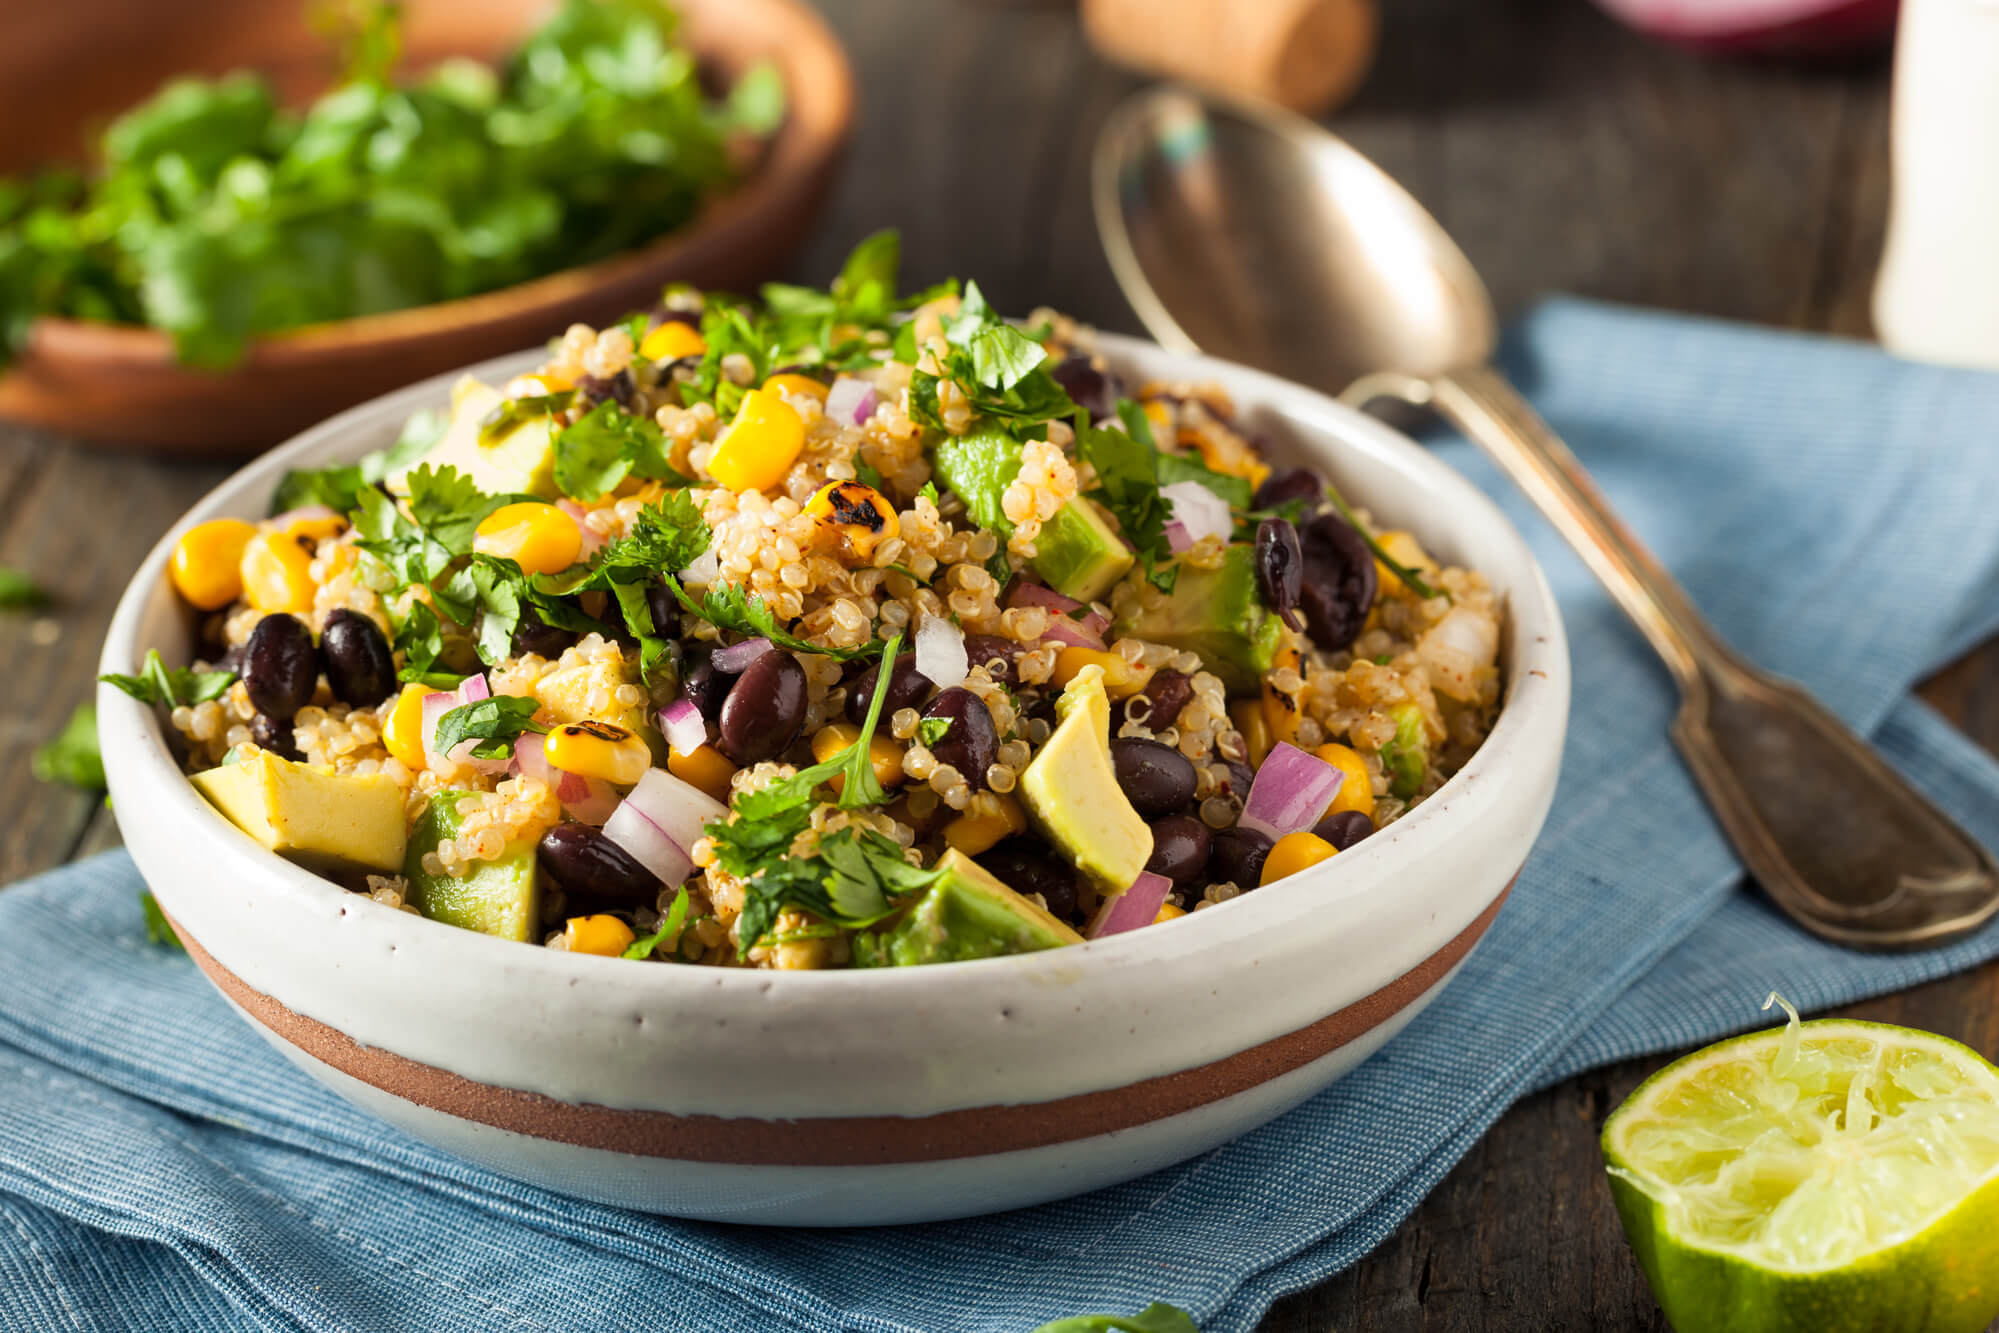 Southwest Quinoa and Bean Salad in a wooden bowl with cilantro in the background.